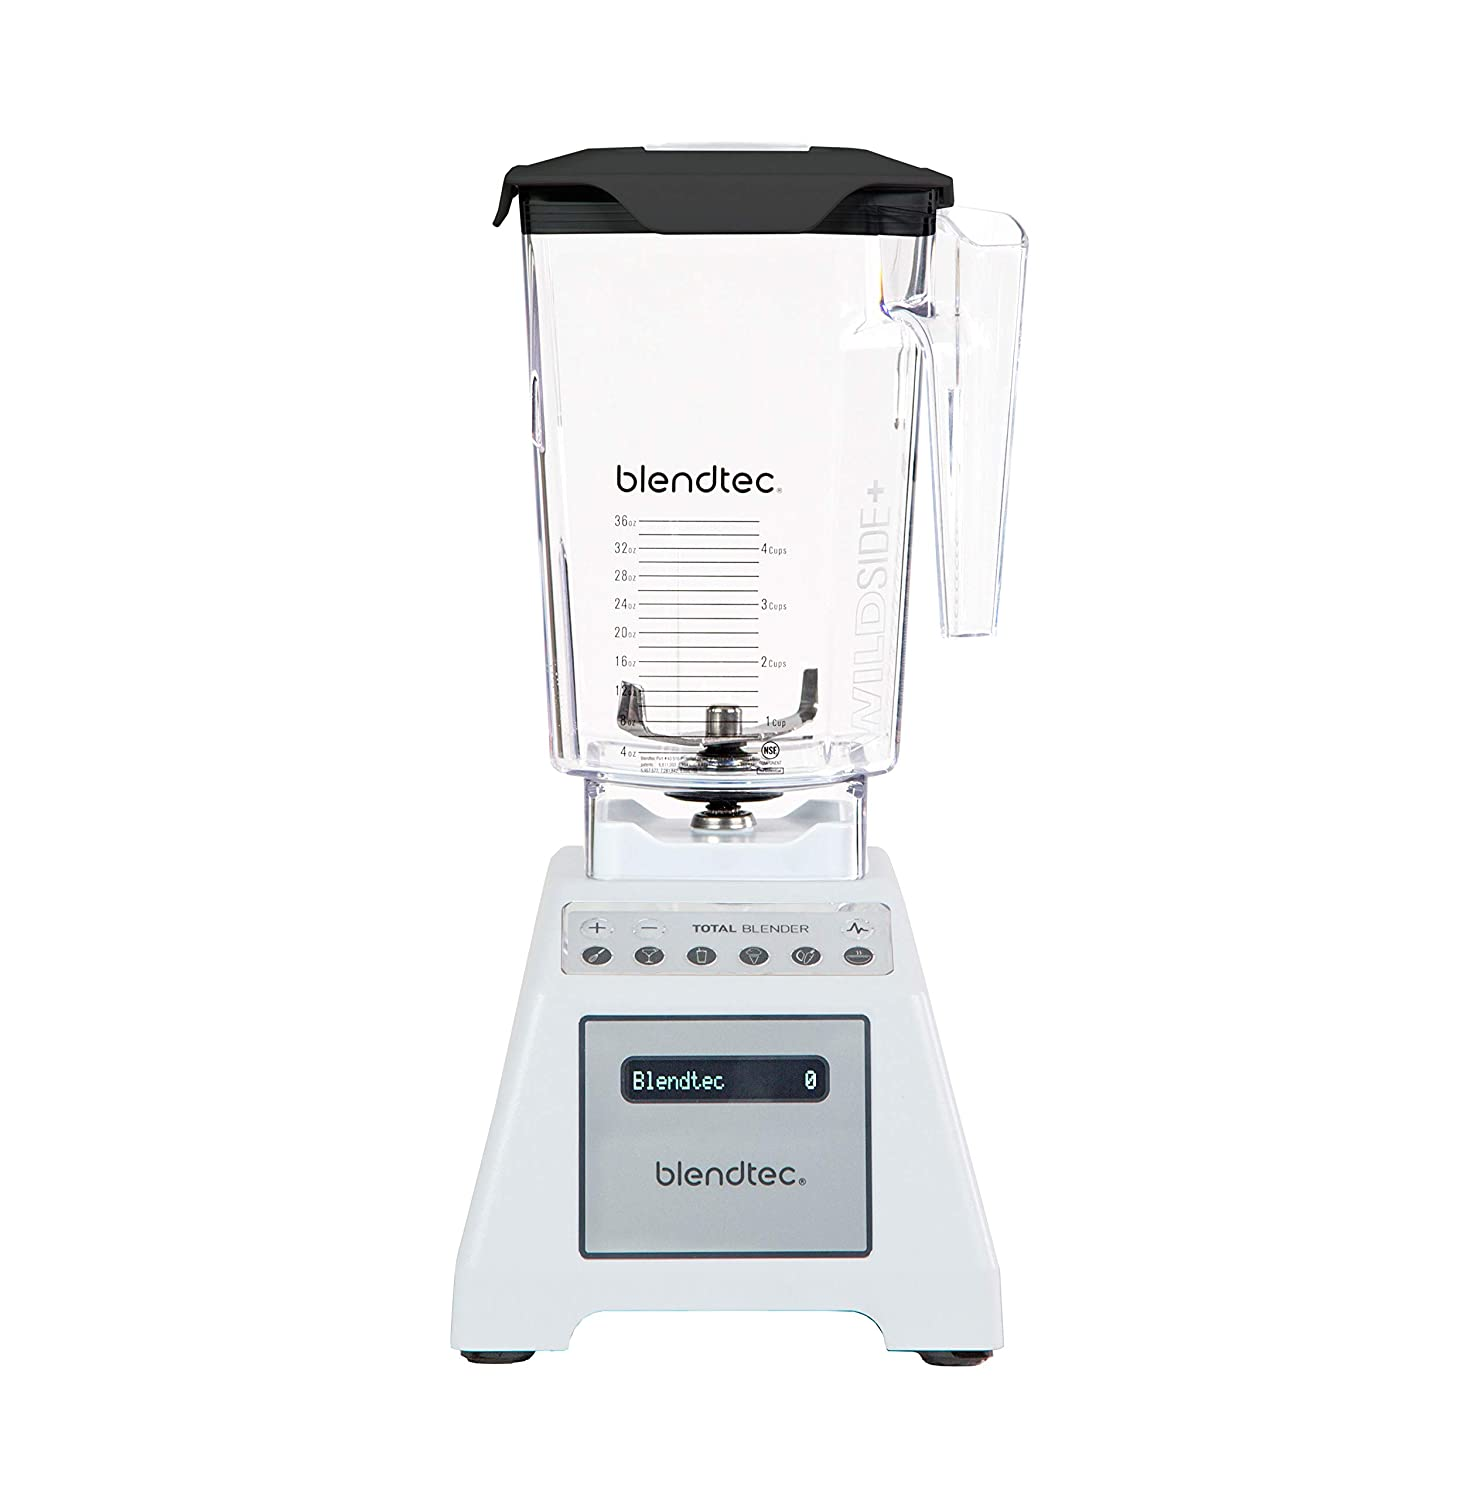 Blendtec Total Classic Original Blender - WildSide+ Jar (90 oz) - Professional-Grade Power - 6 Pre-programmed Cycles - 10-speeds - White